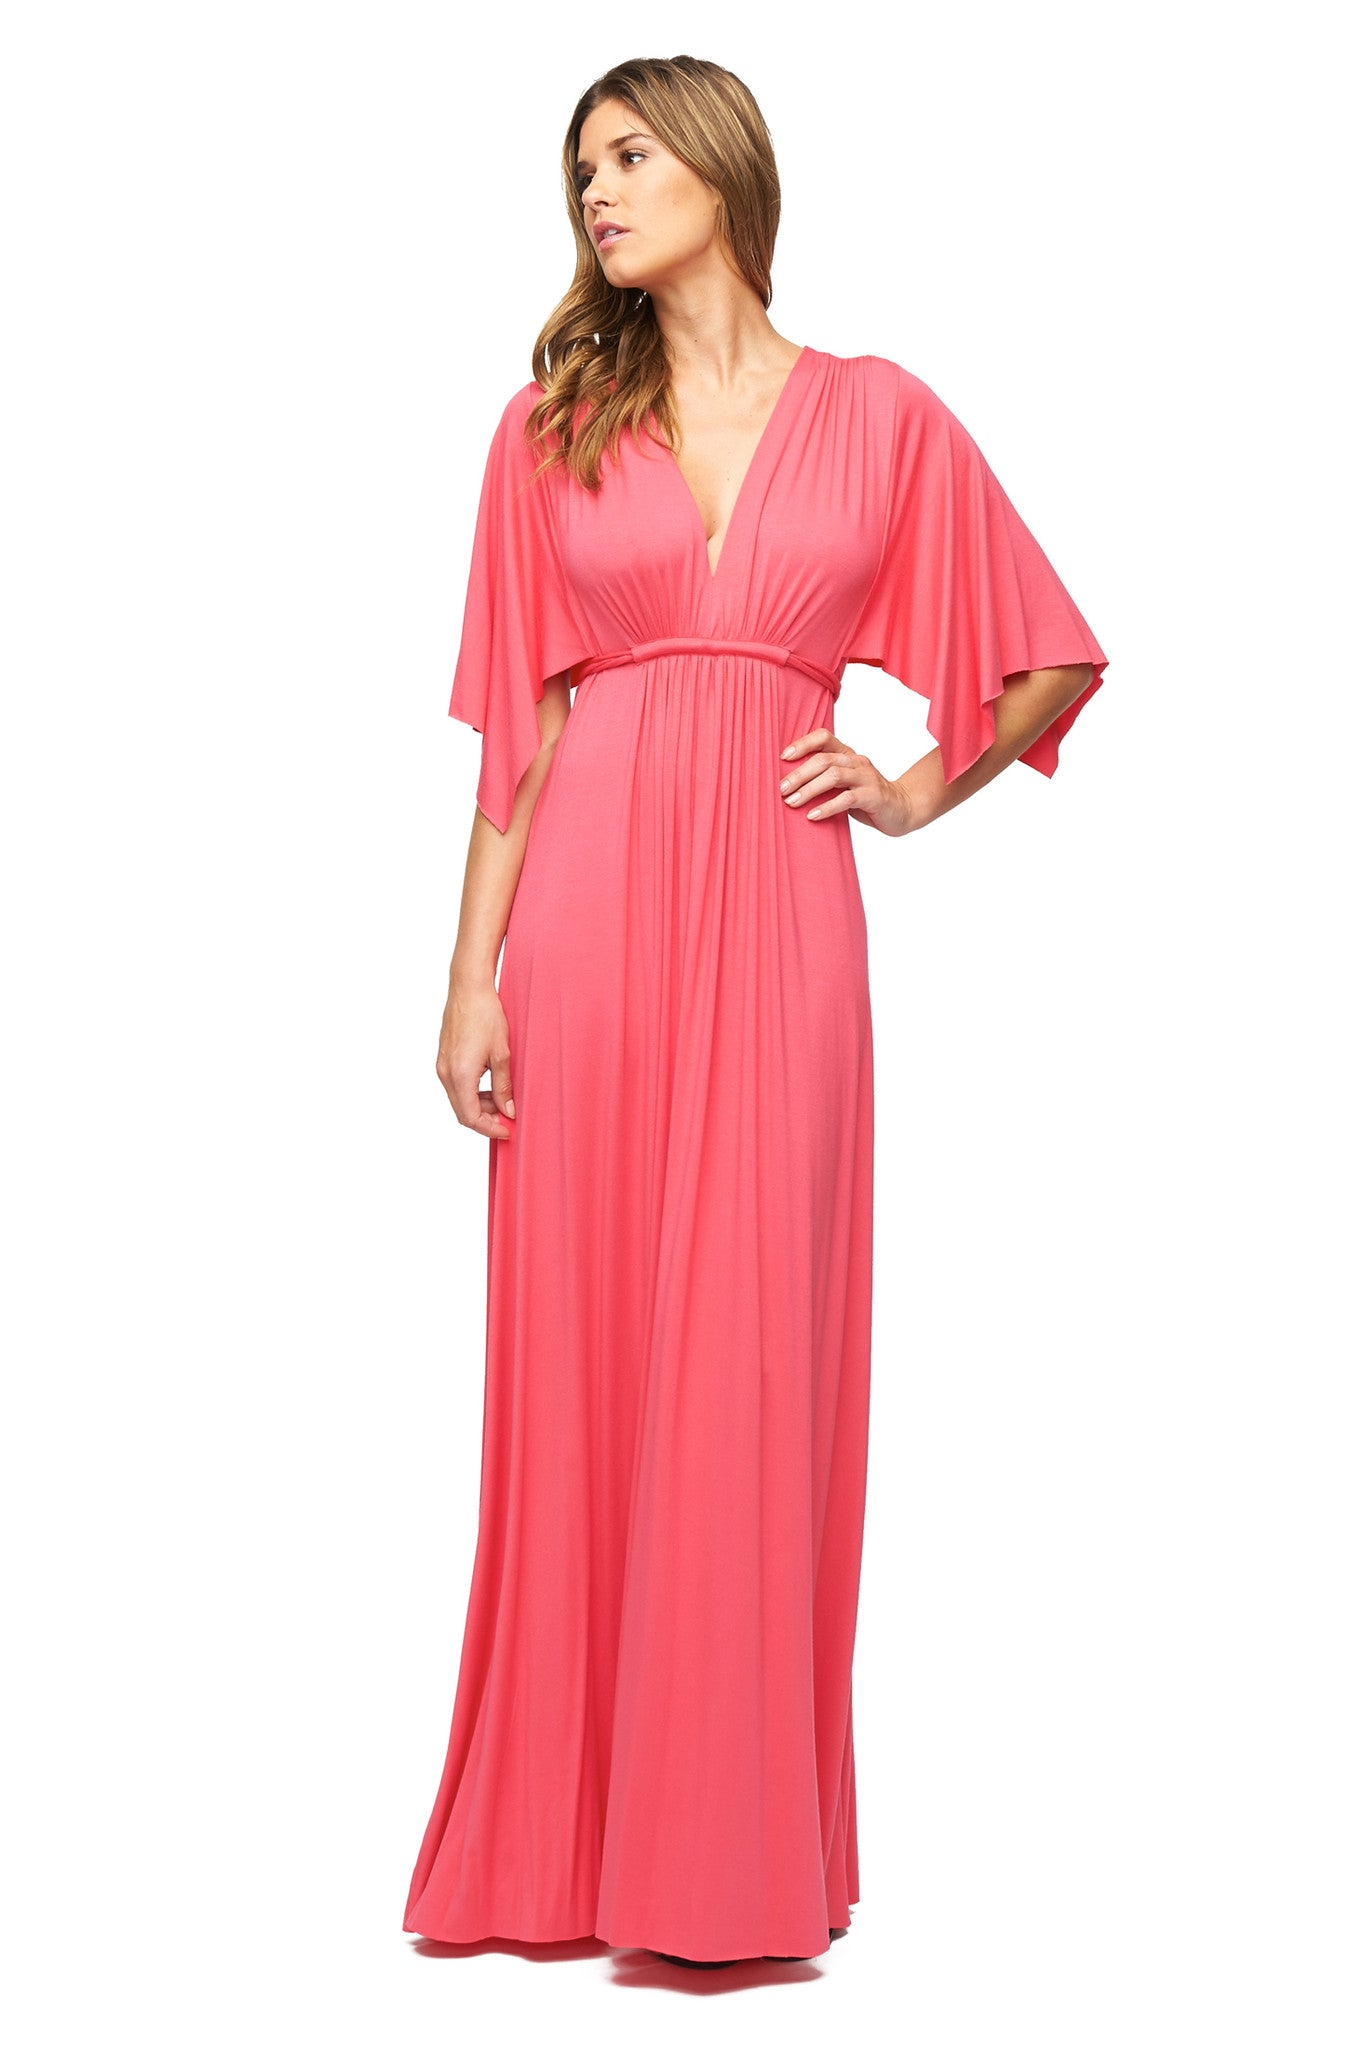 Long Caftan Dress - Sandia